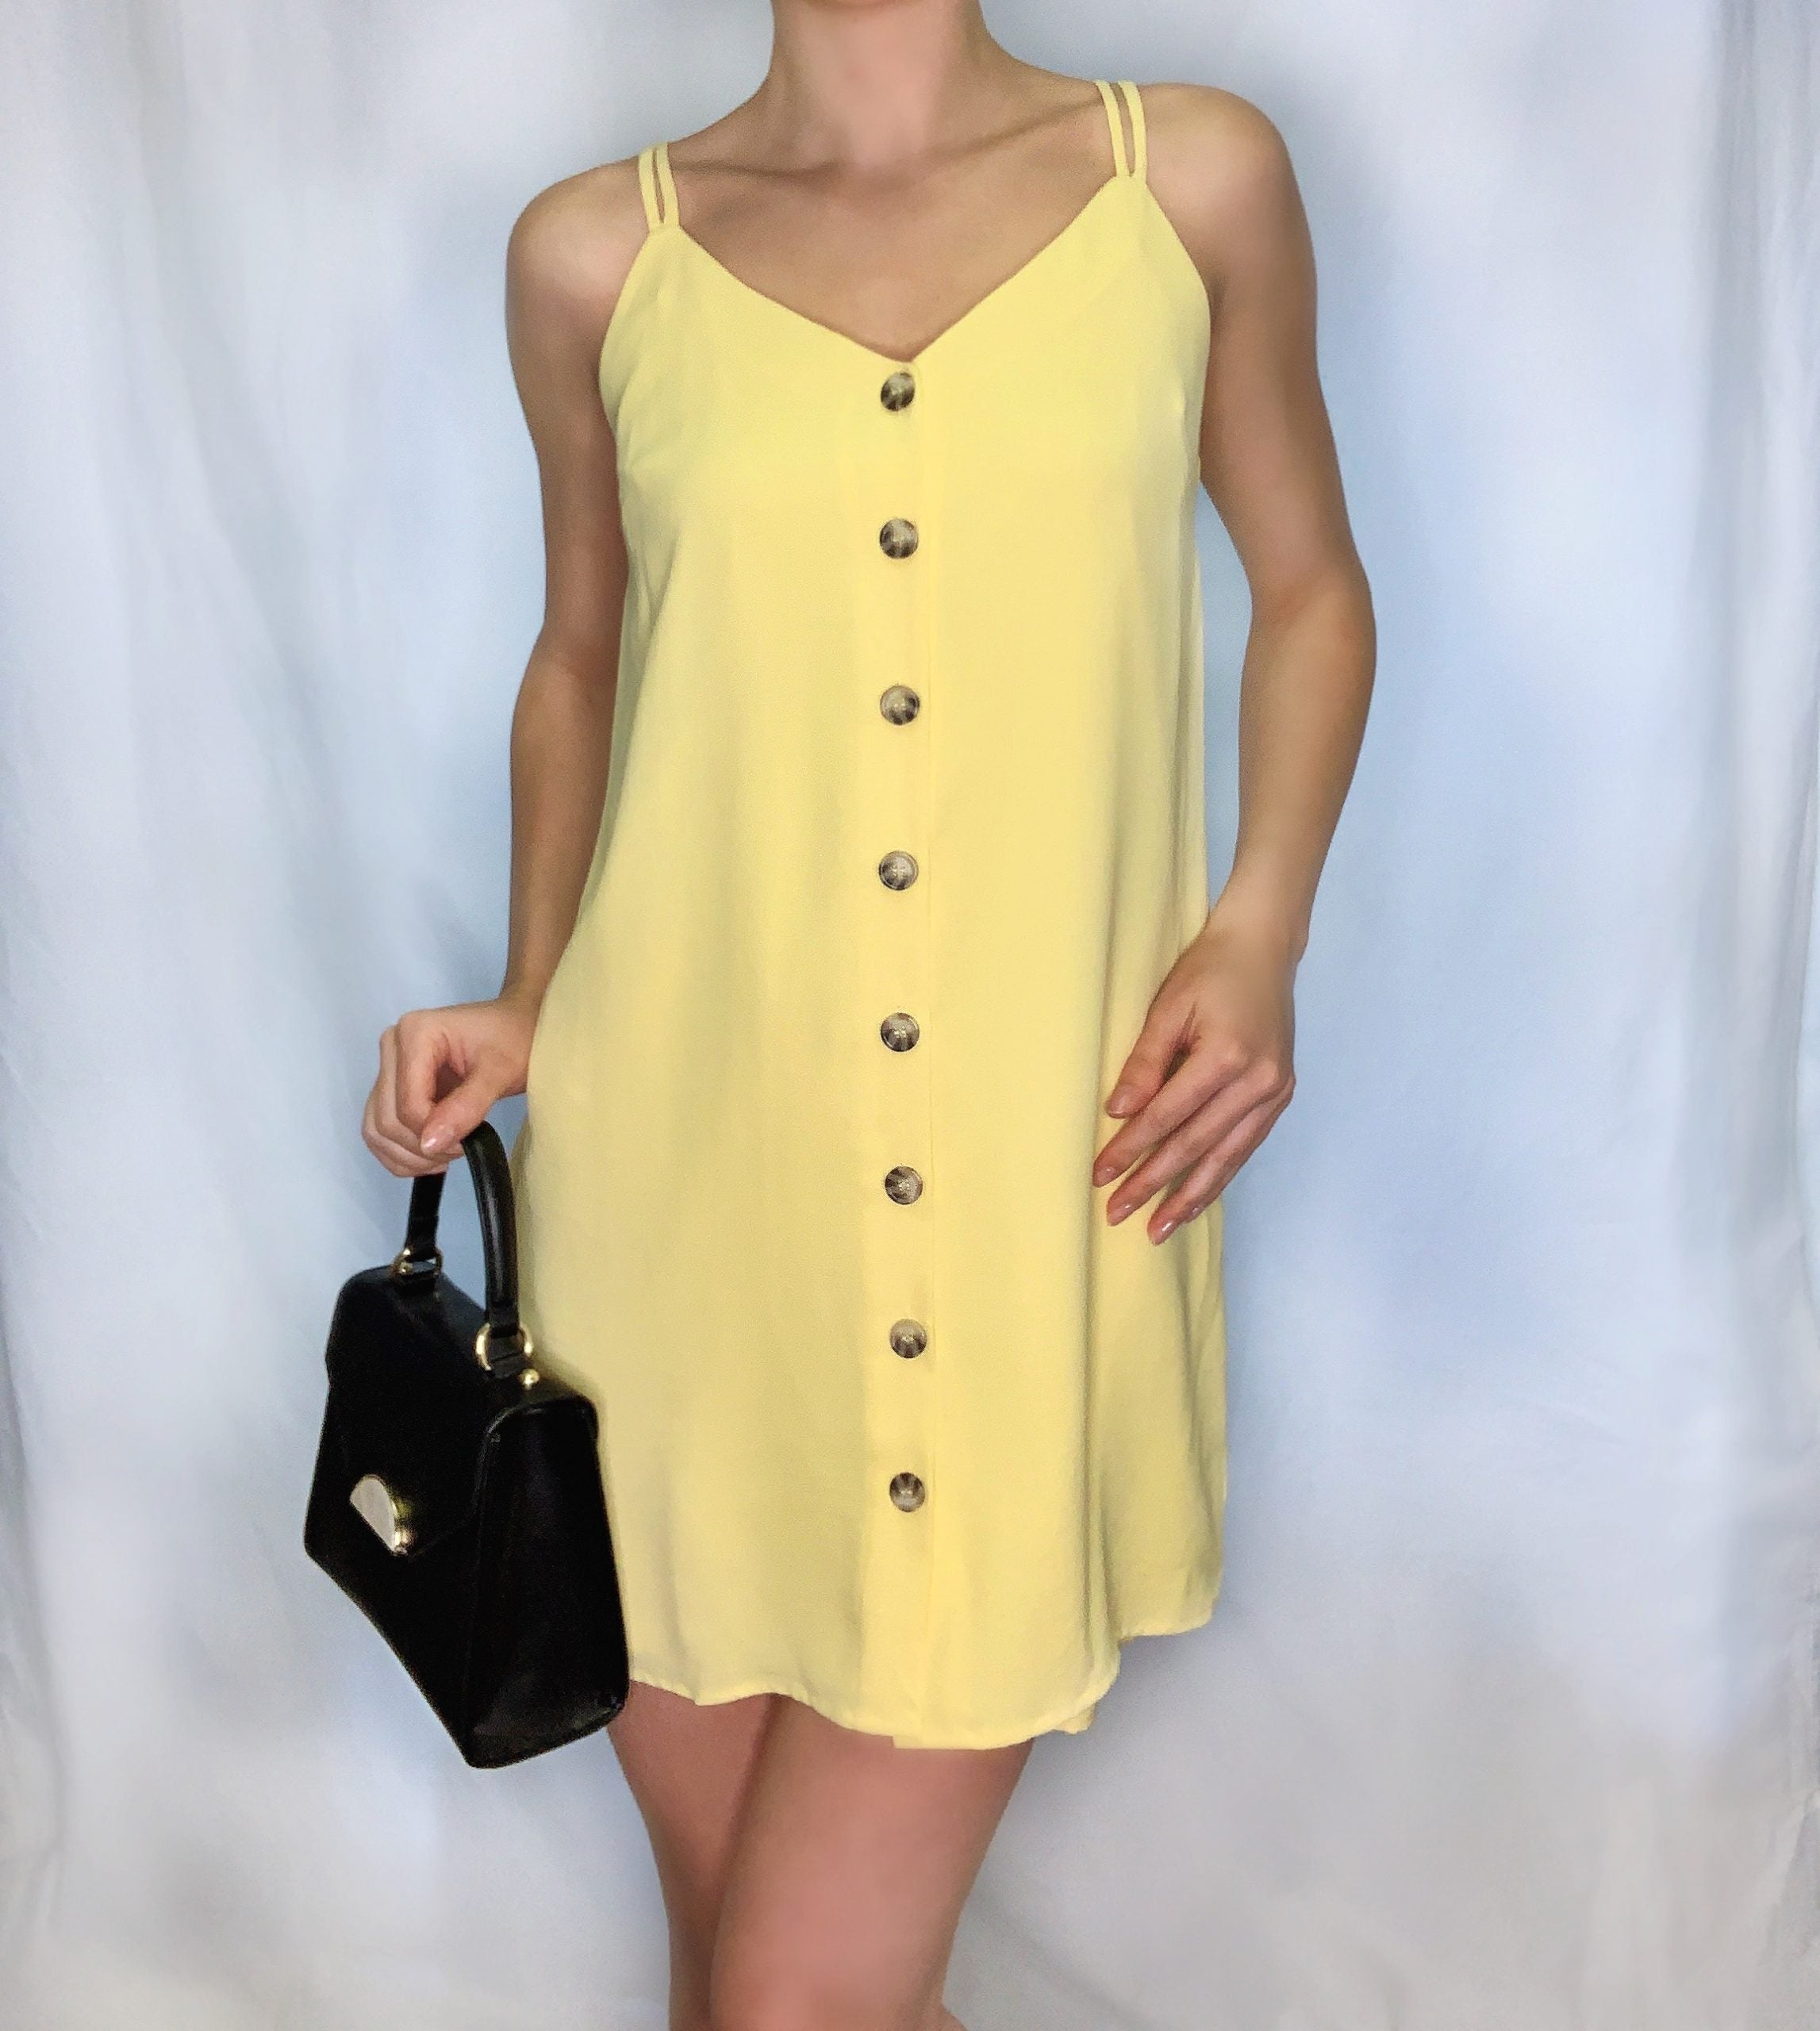 Double Spaghetti Strap Dress w/ Horn Button